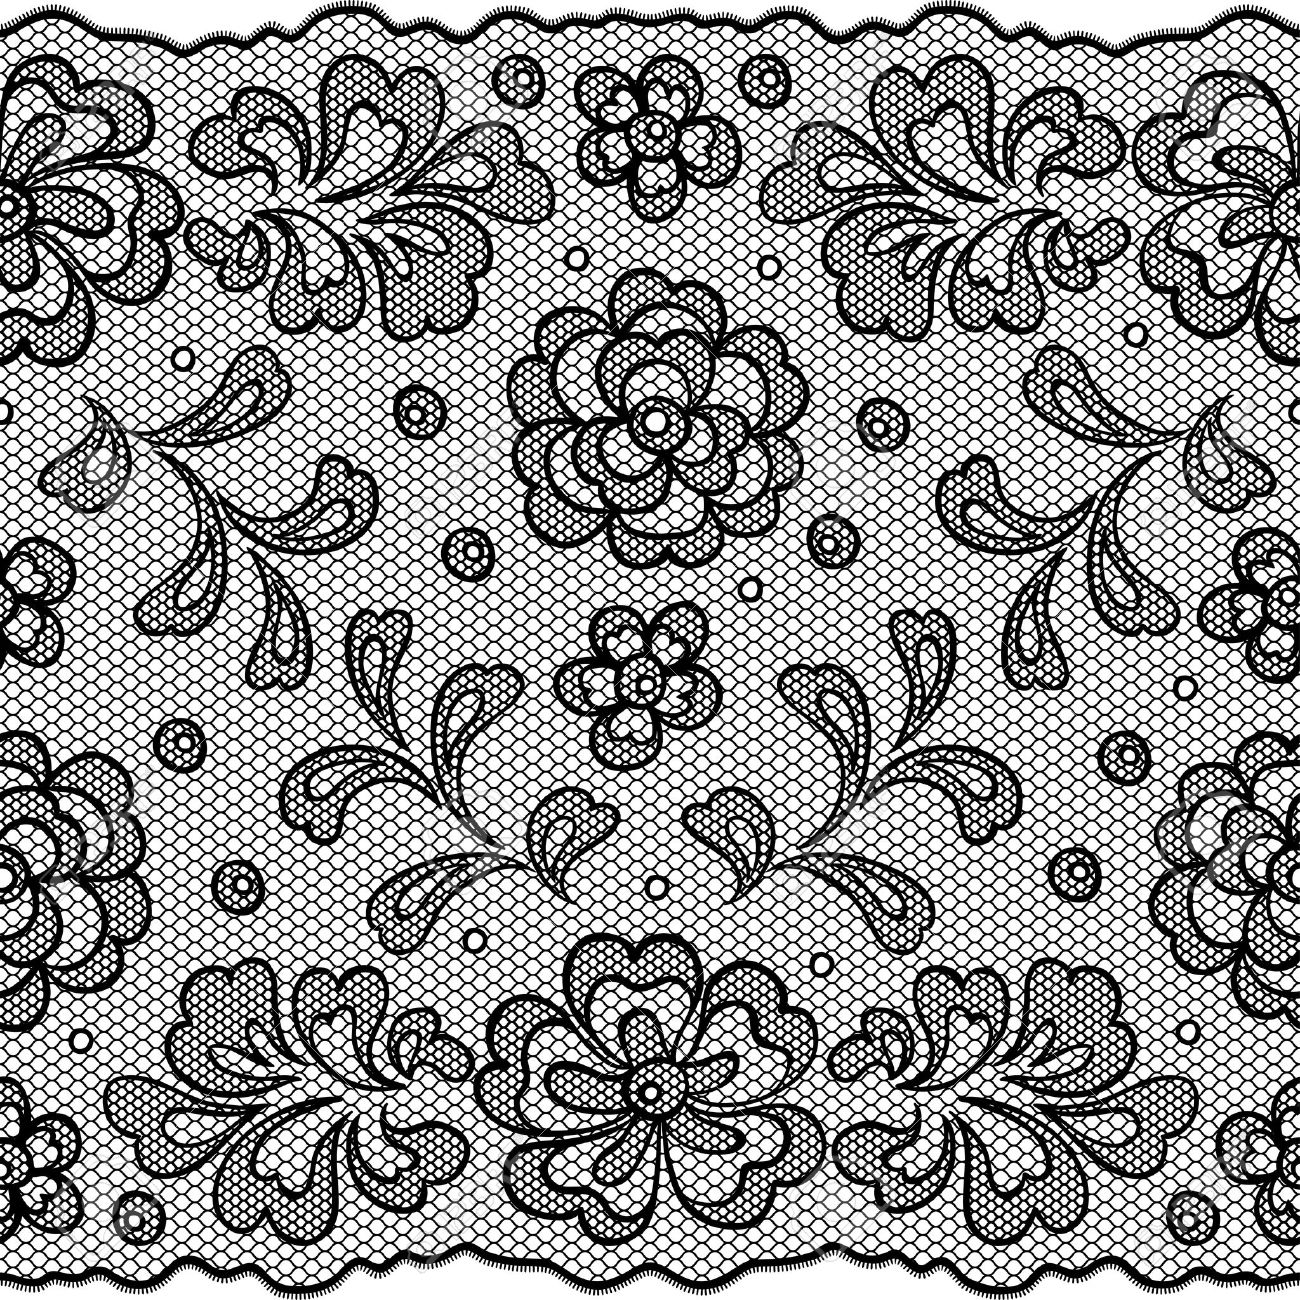 Lace Fabric Seamless Border With Abstact Flowers Royalty Free ...